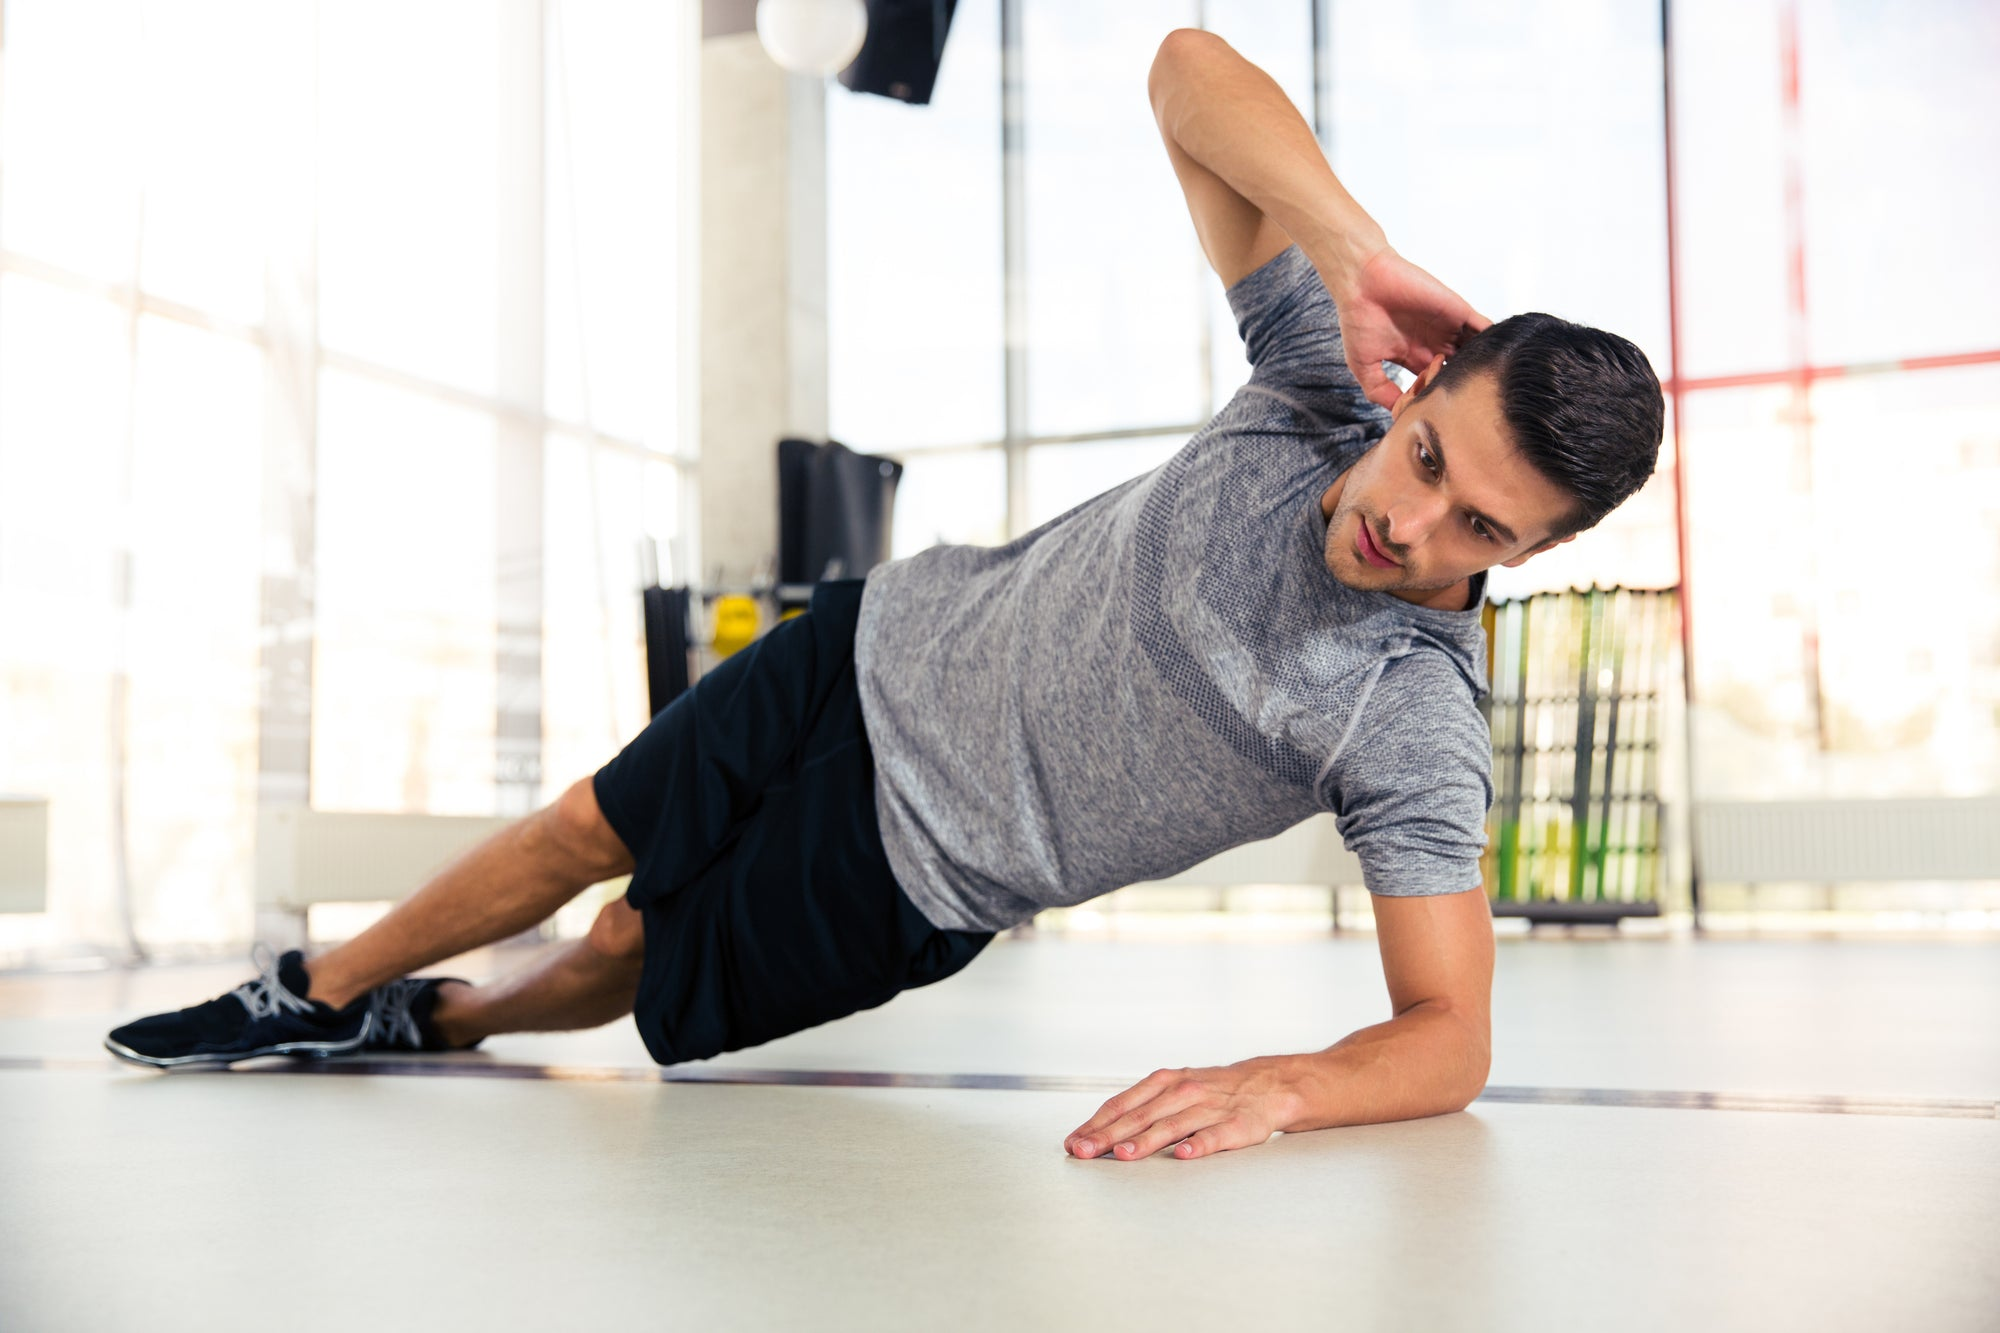 How to Do A Side Plank + Hip Lift Properly